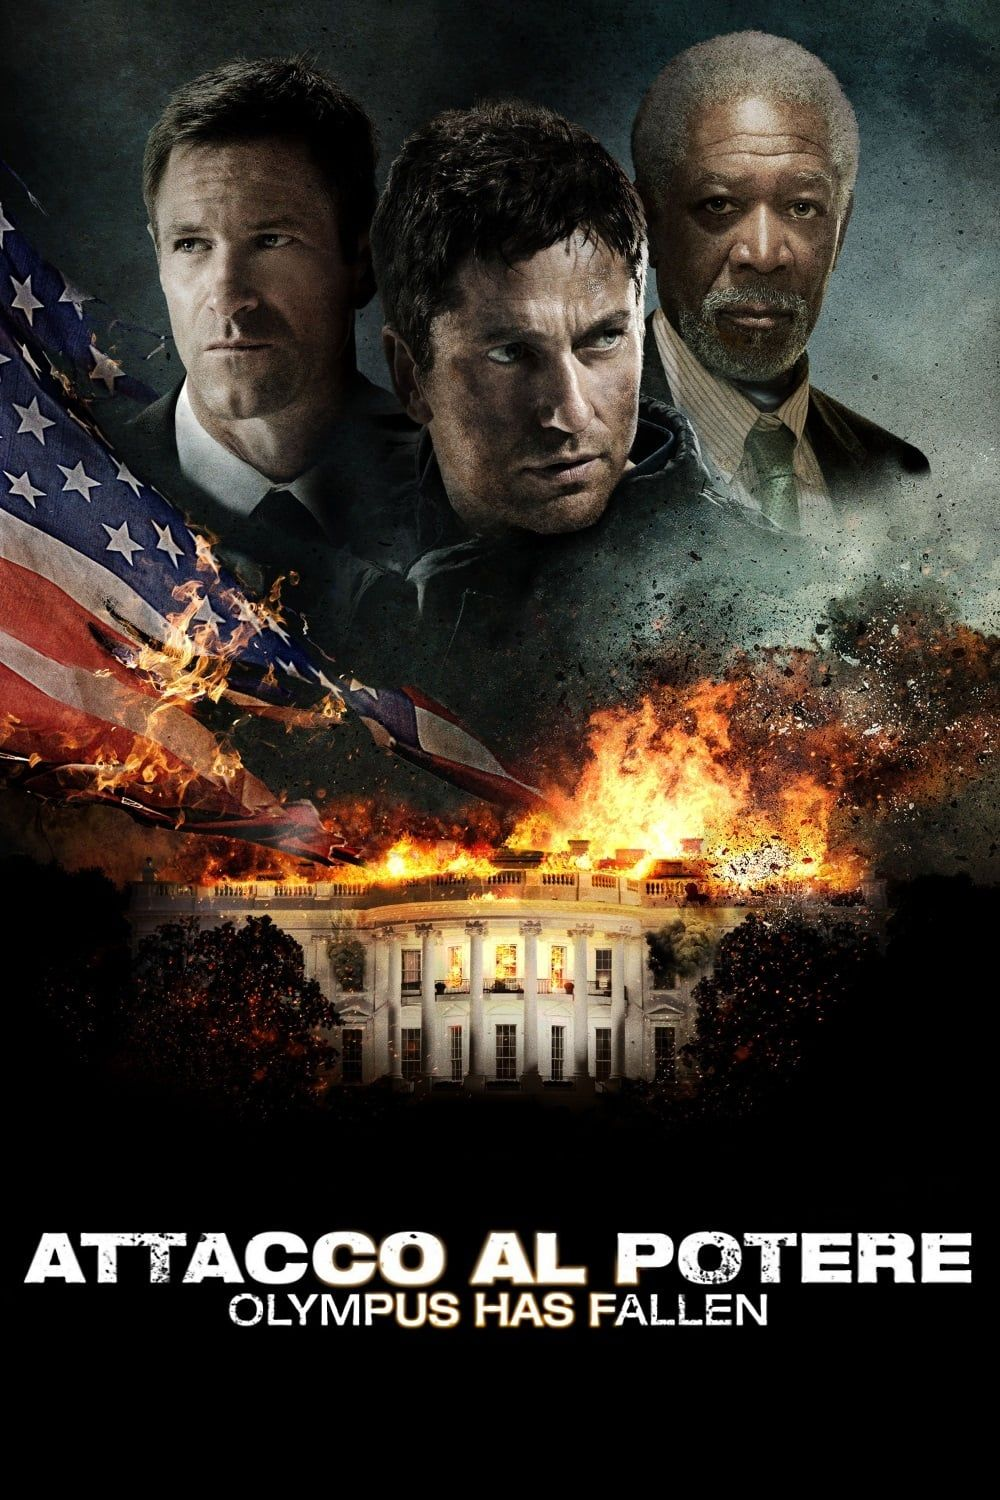 Attacco Al Potere Olympus Has Fallen Streaming Film E Serie Tv In Altadefinizione Hd Film Gerard Butler Dylan Mcdermott